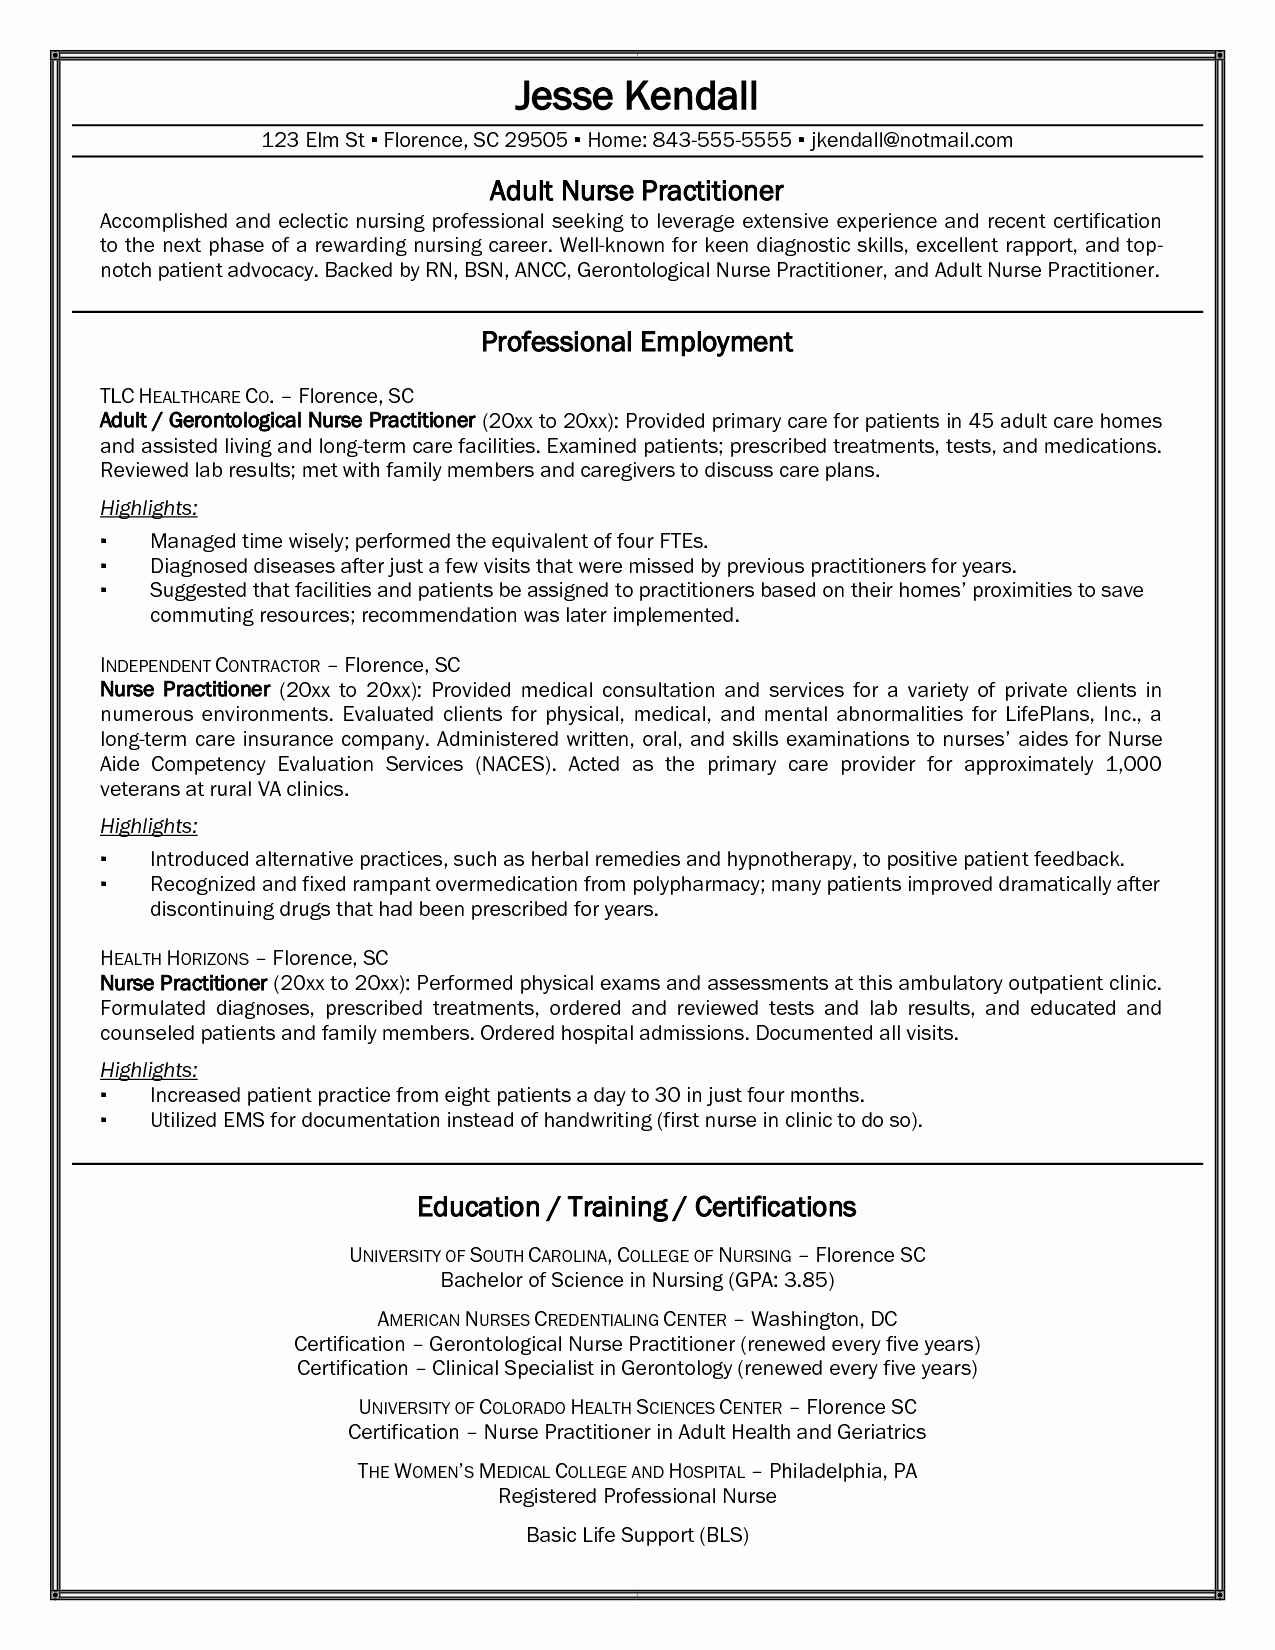 resumes for nurses Collection-resume for nurse educator position luxury resumes by joyce unique experienced rn resume fresh nurse resume 17-m